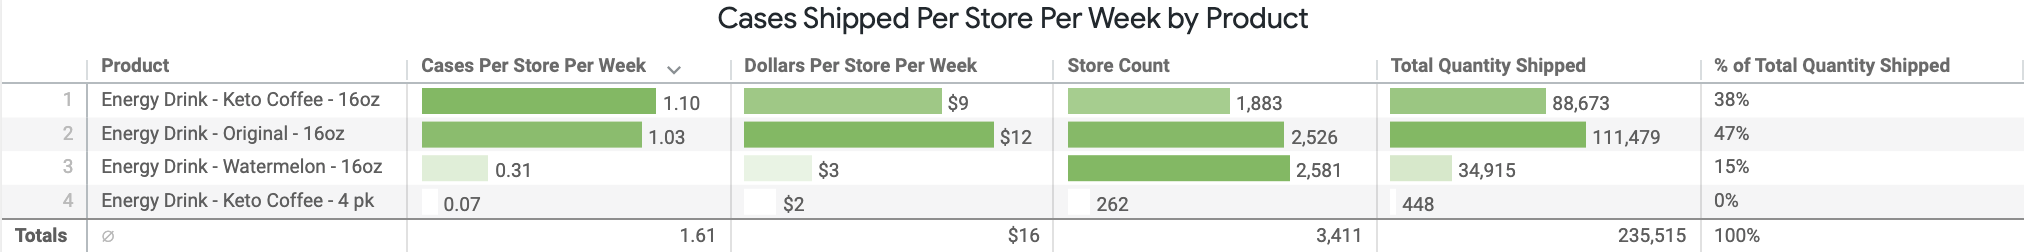 Cases_Shipped_Per_Store_Per_Week_by_Product.png